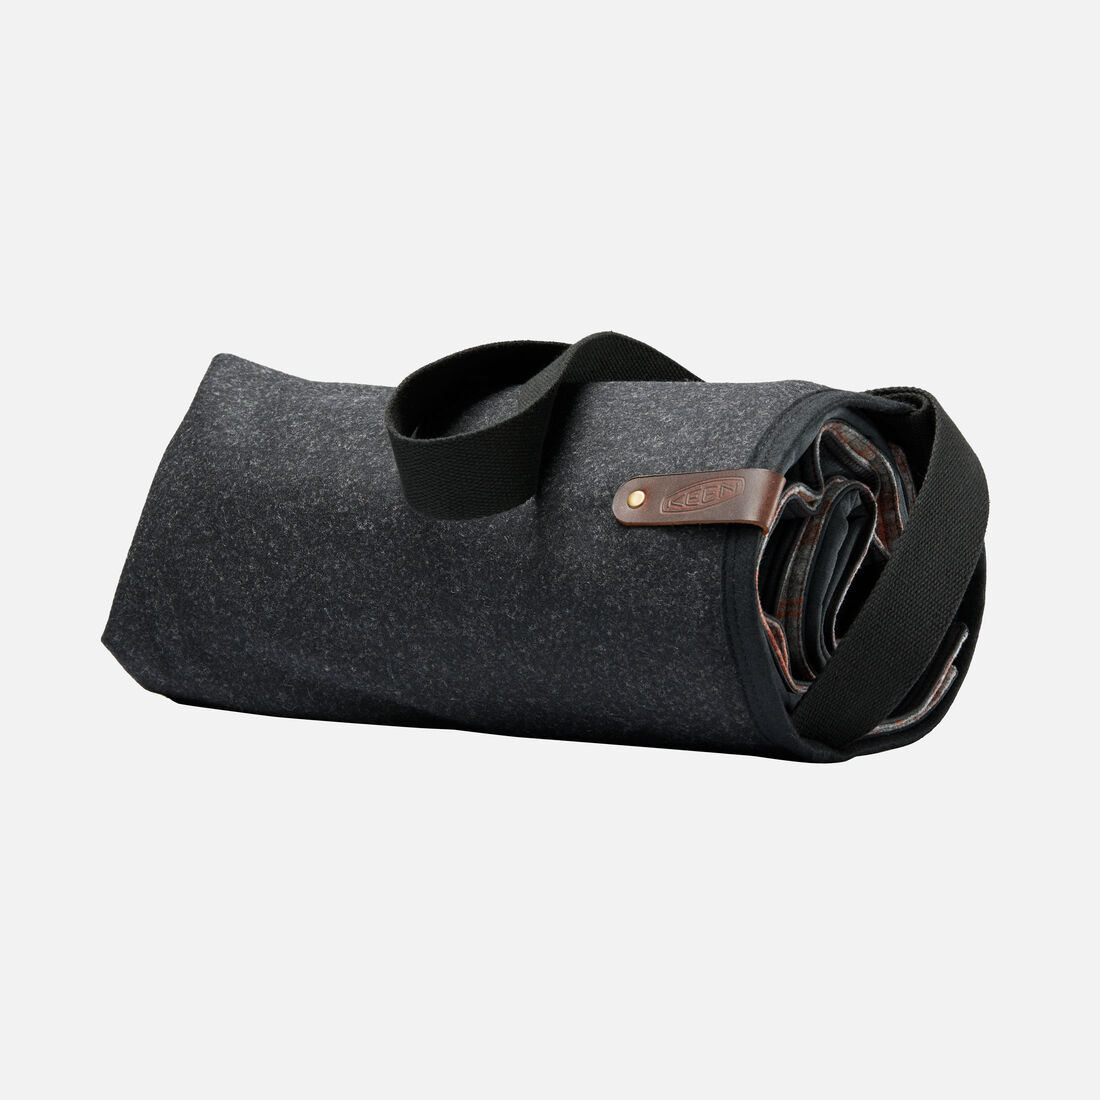 Adventure Blanket Tote in Charcoal - large view.